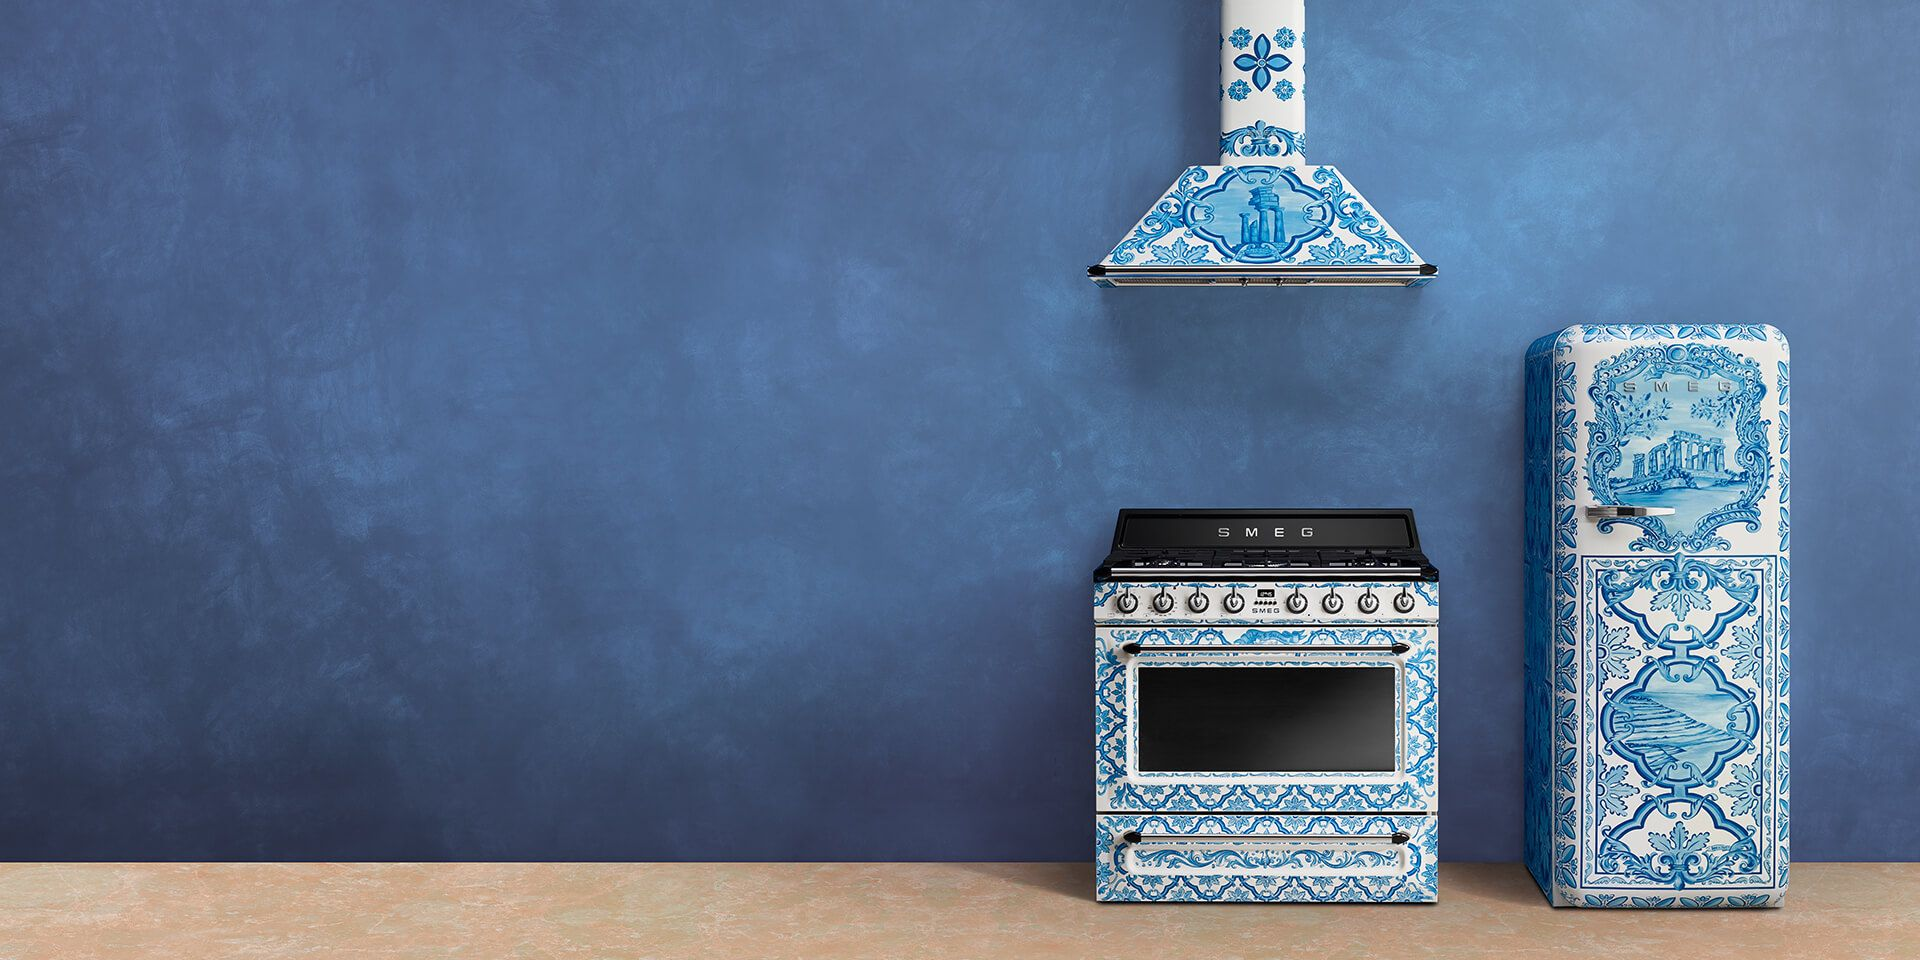 Home domestic appliances Smeg and Dolce&Gabbana